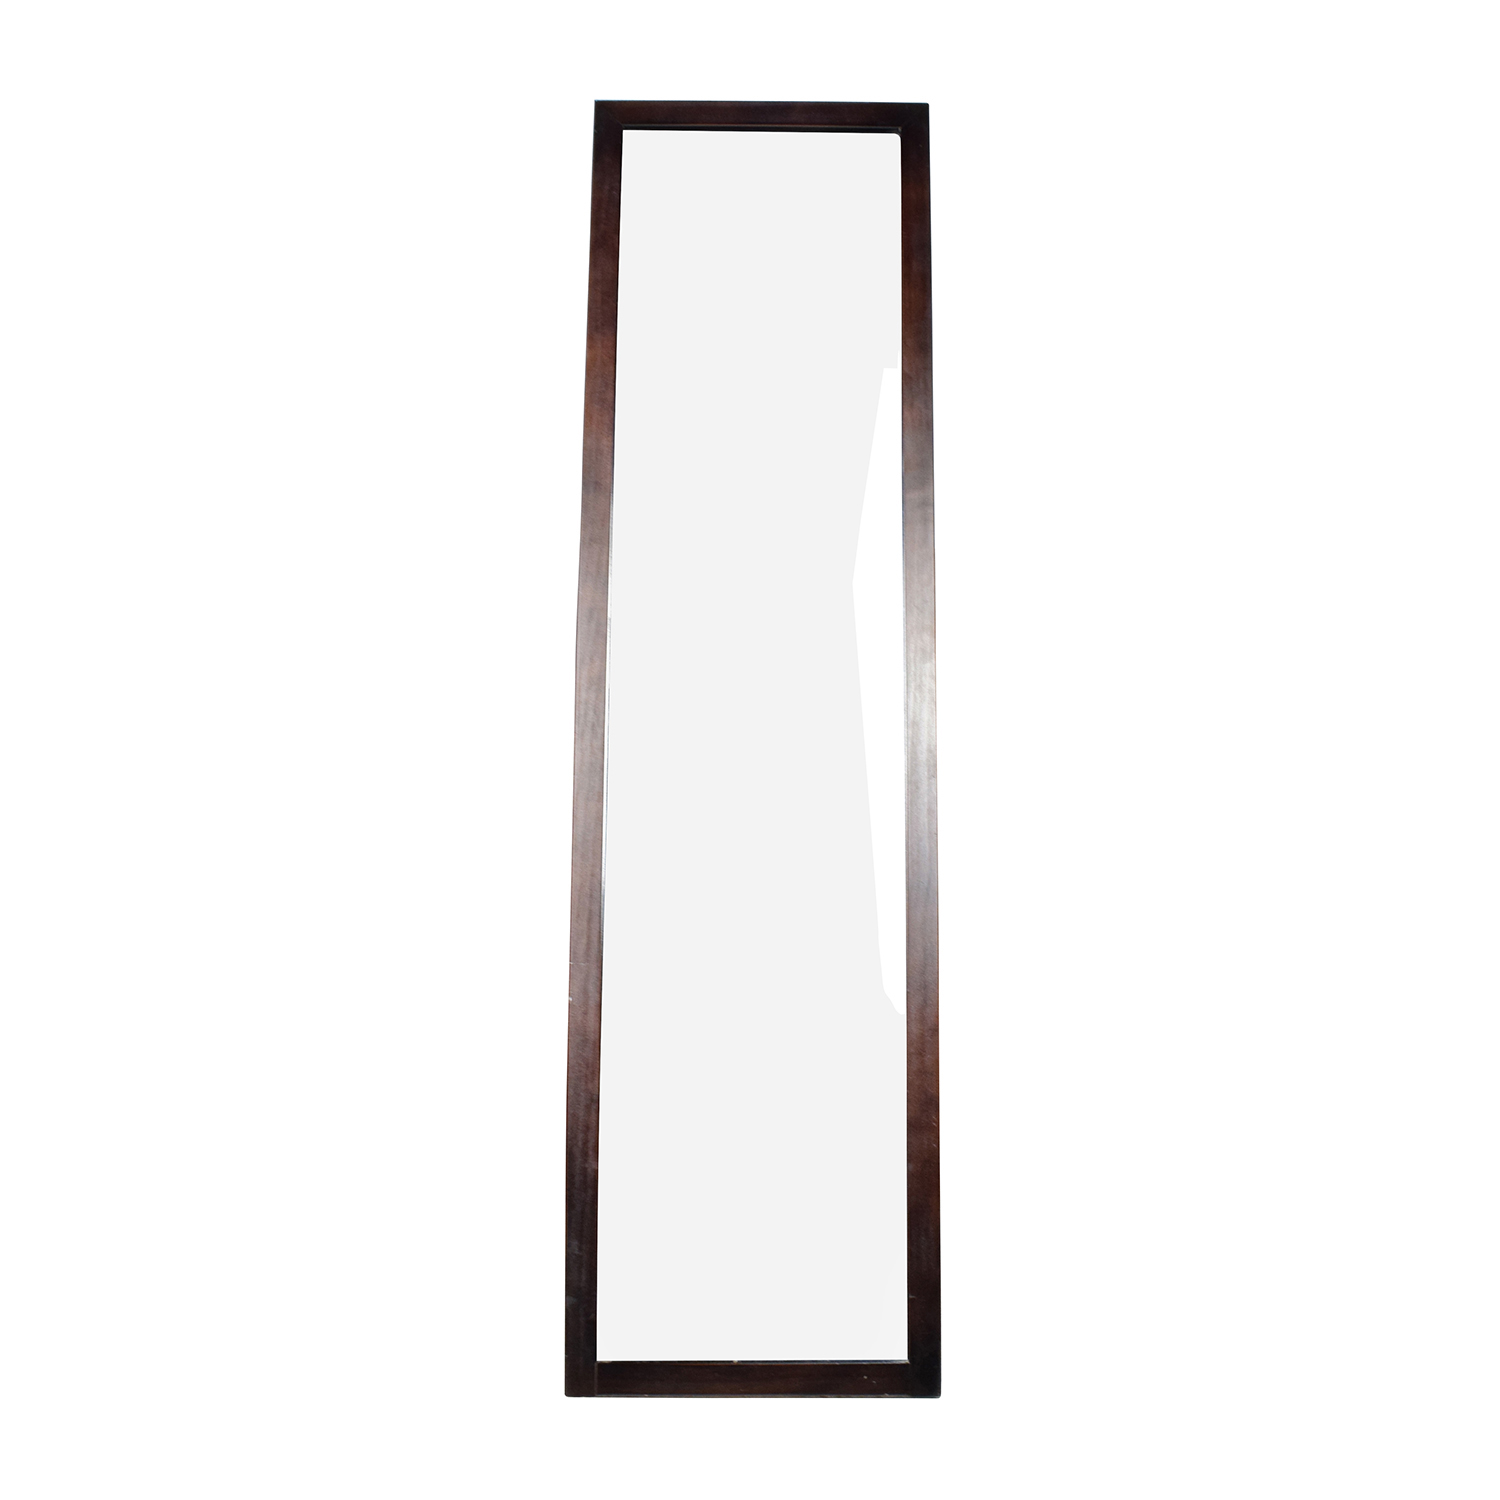 Wayfair Wayfair Loxley Cheval  Floor Mirror dimensions